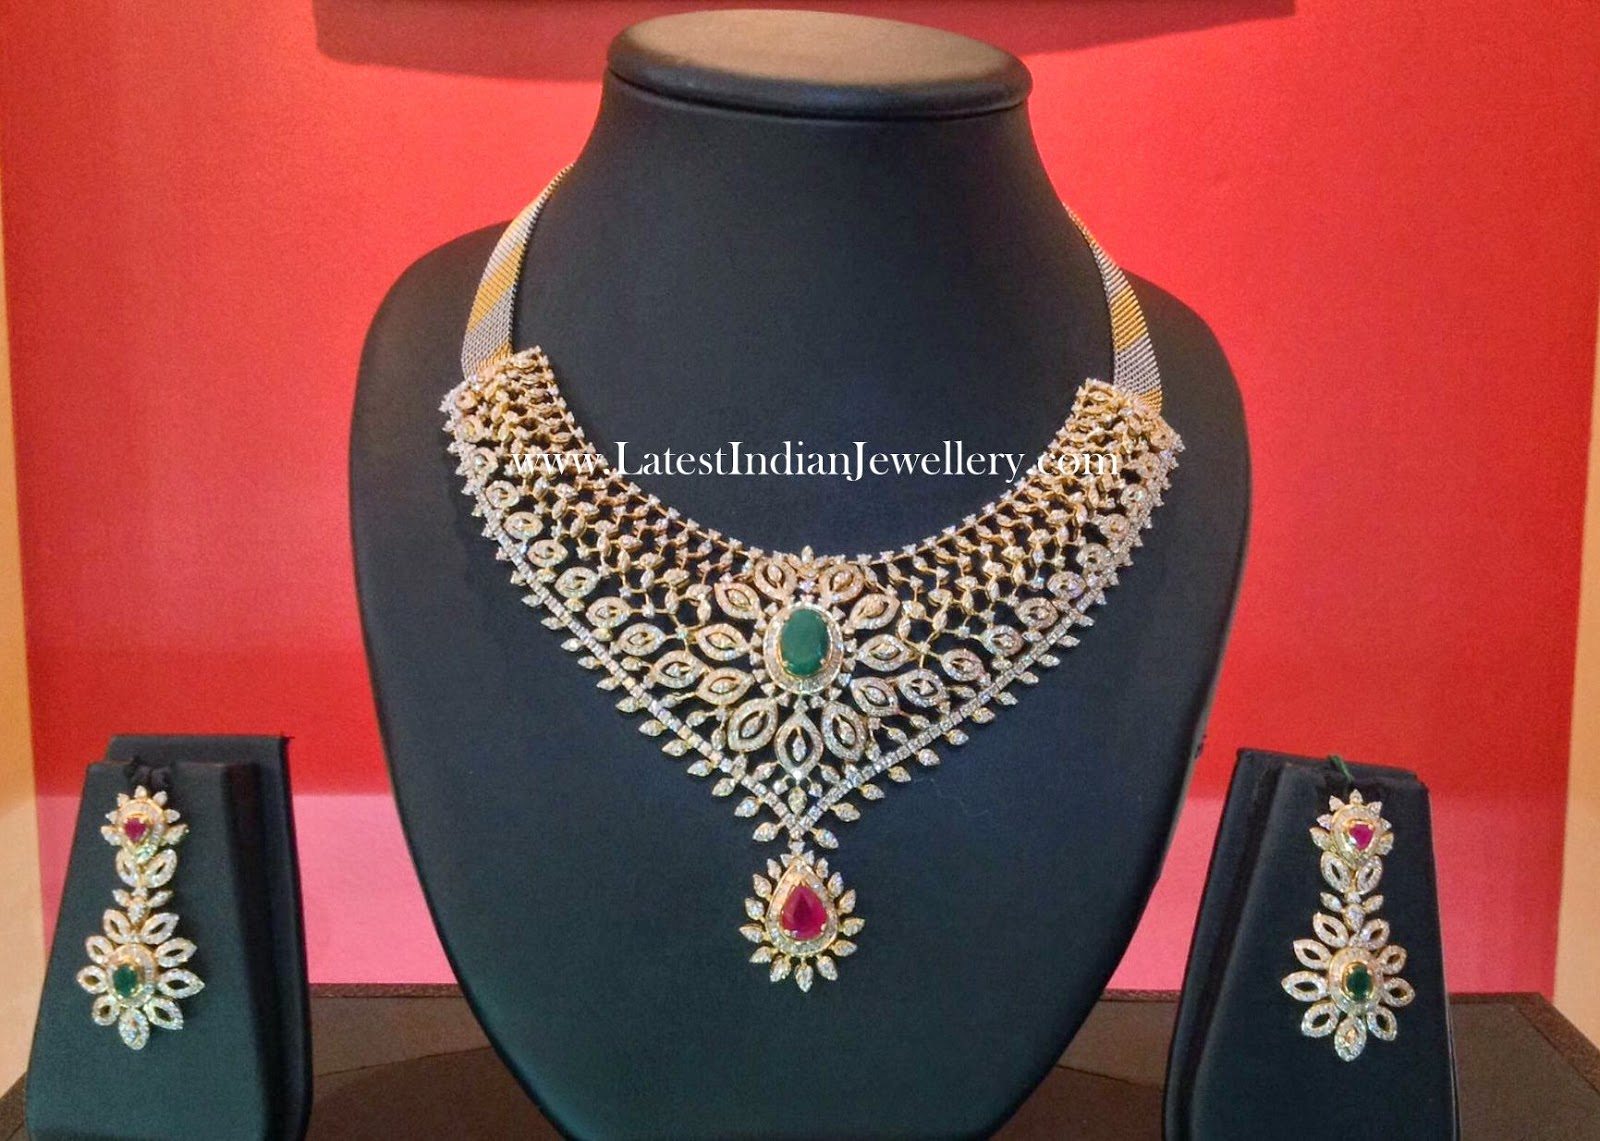 Tanmai Jewellers Diamond Choker Necklace